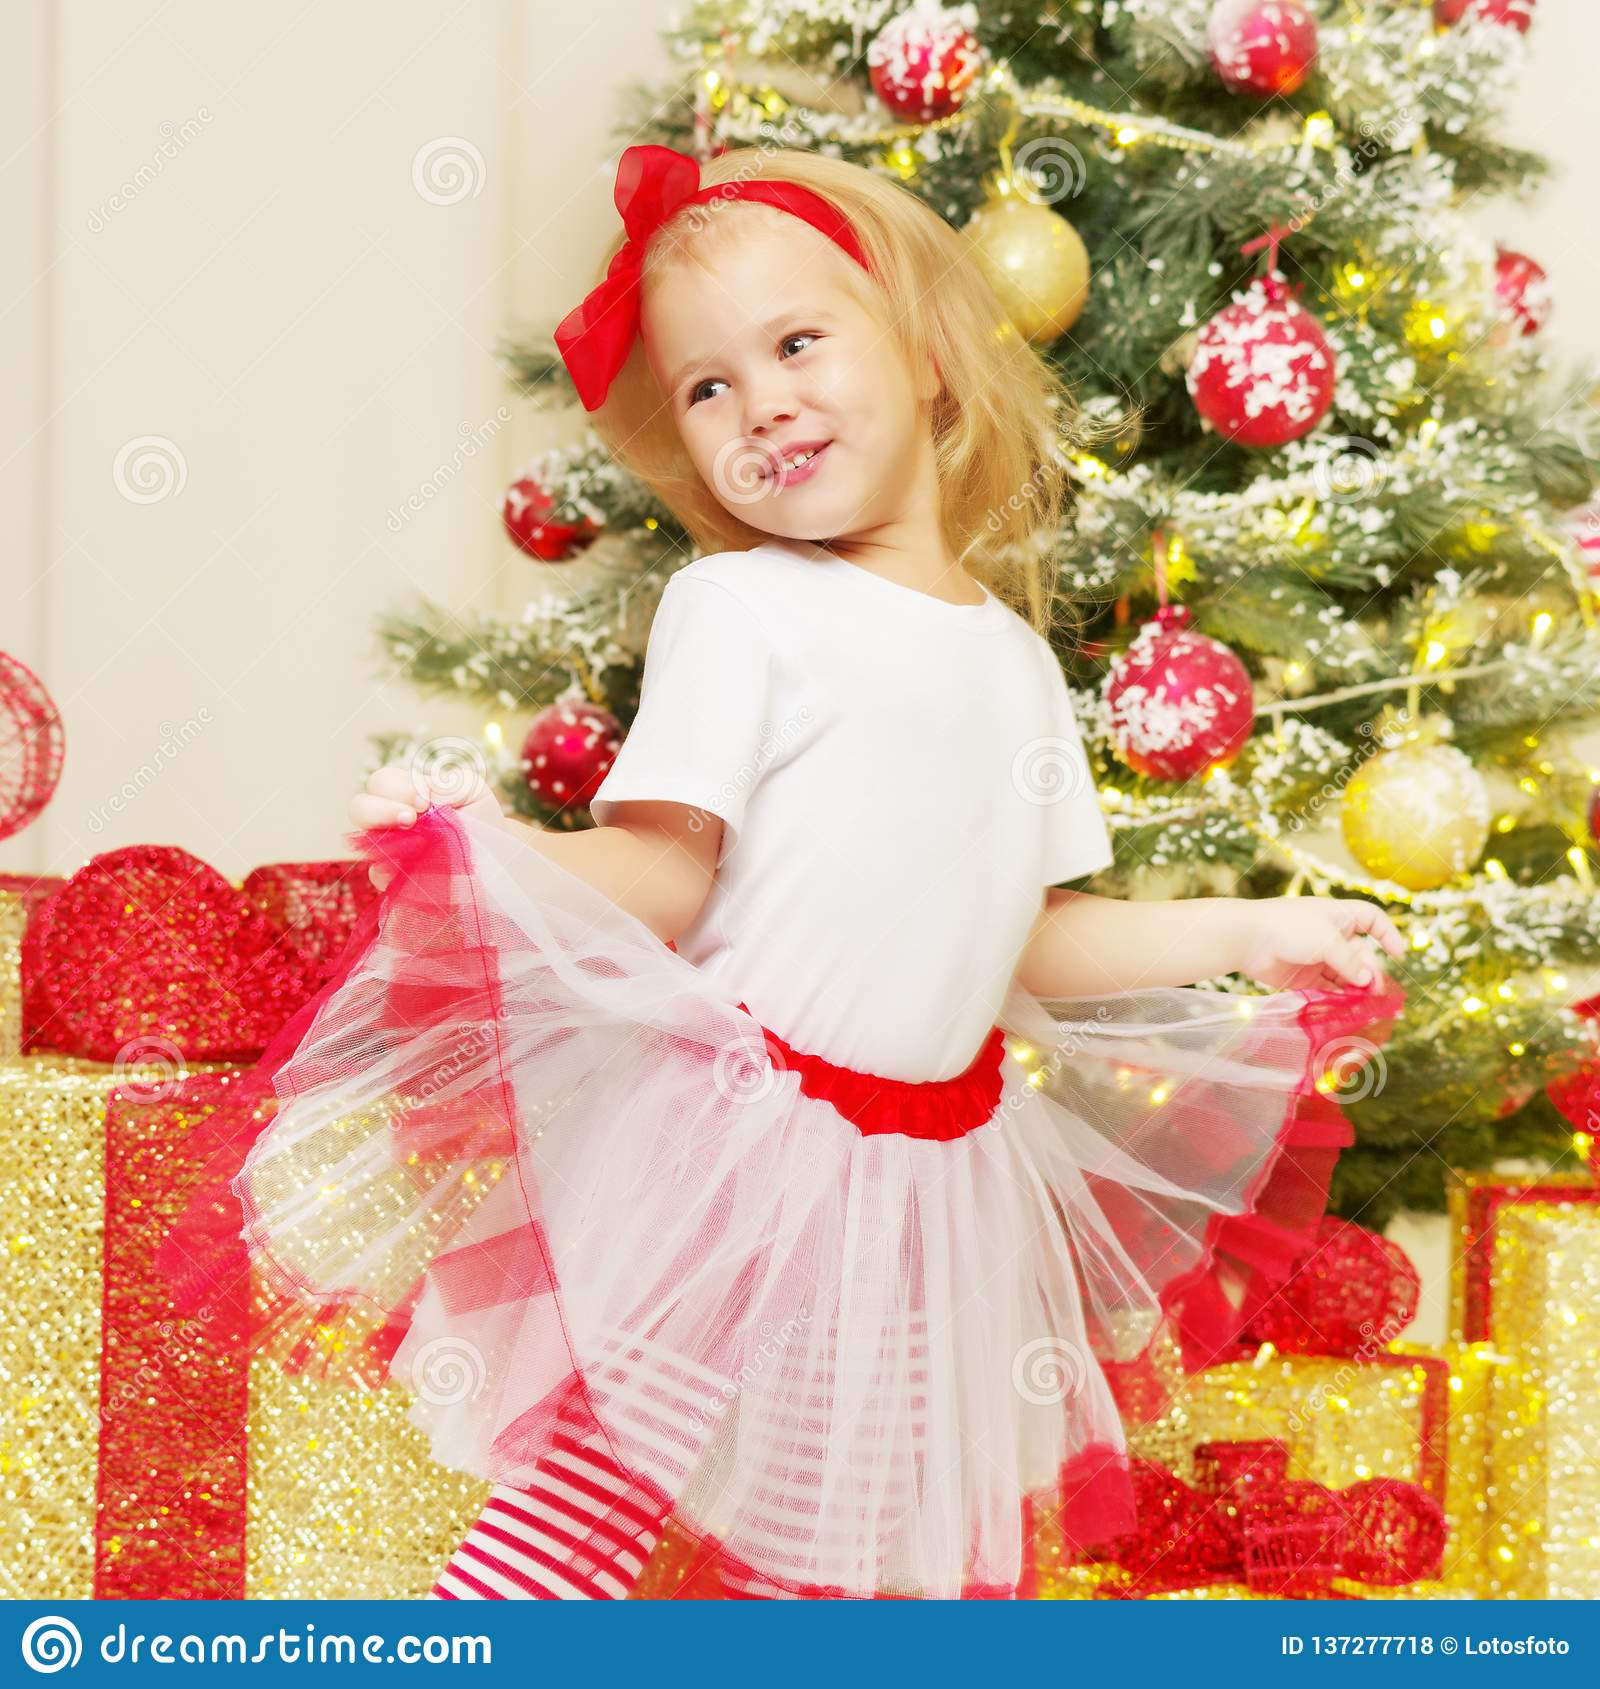 Little Girl Christmas Tree: The Girl At The Christmas Tree. Stock Photo